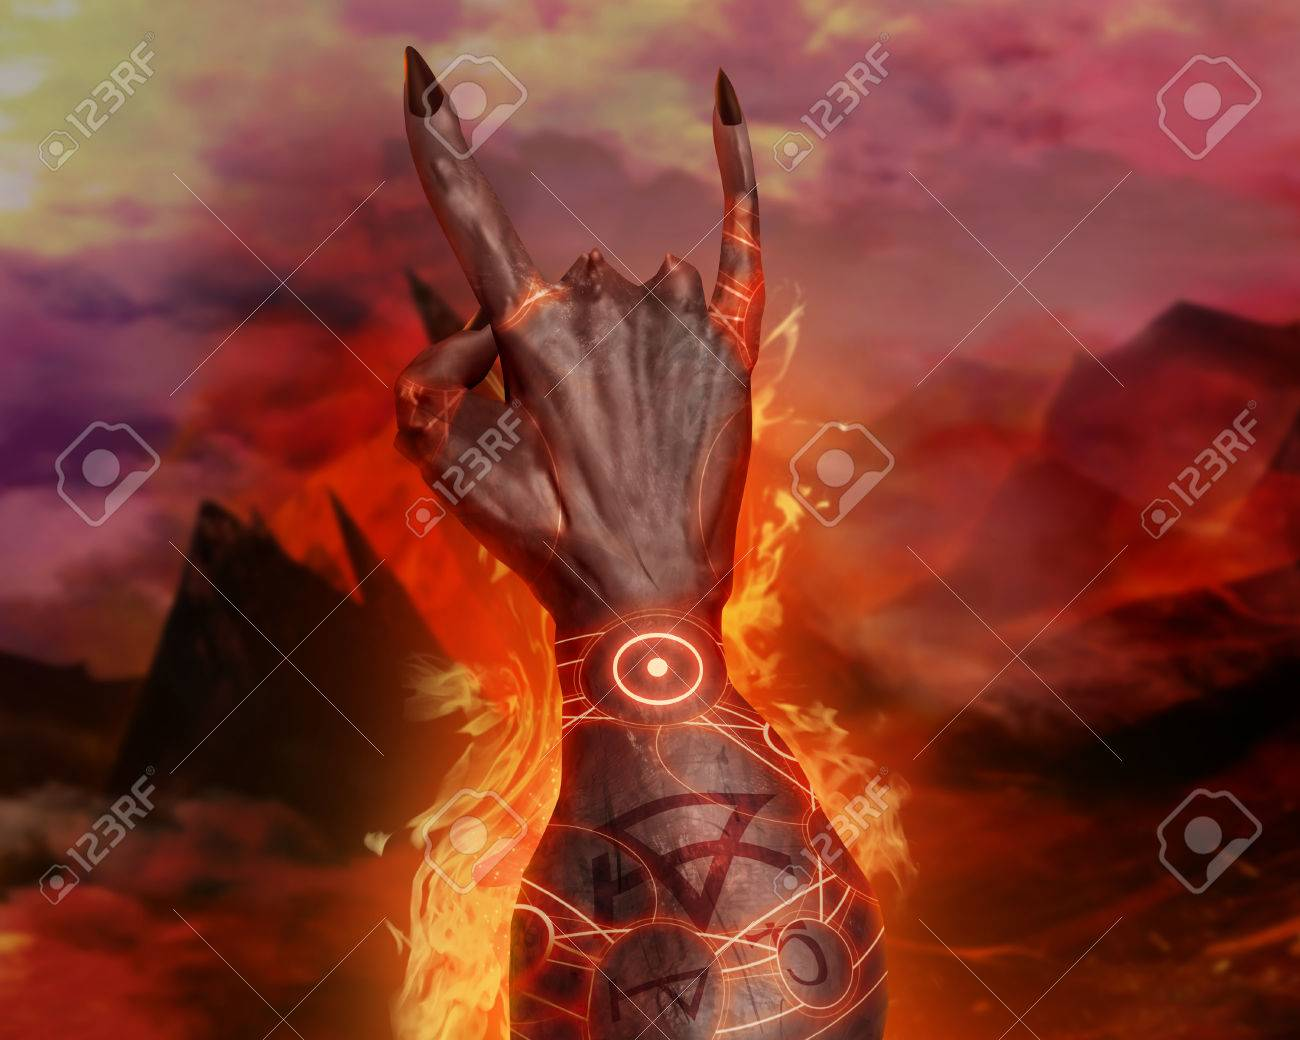 Artwork of a 3d first person view demonic hand showing horn sign artwork of a 3d first person view demonic hand showing horn sign and magic pentacle fire voltagebd Images